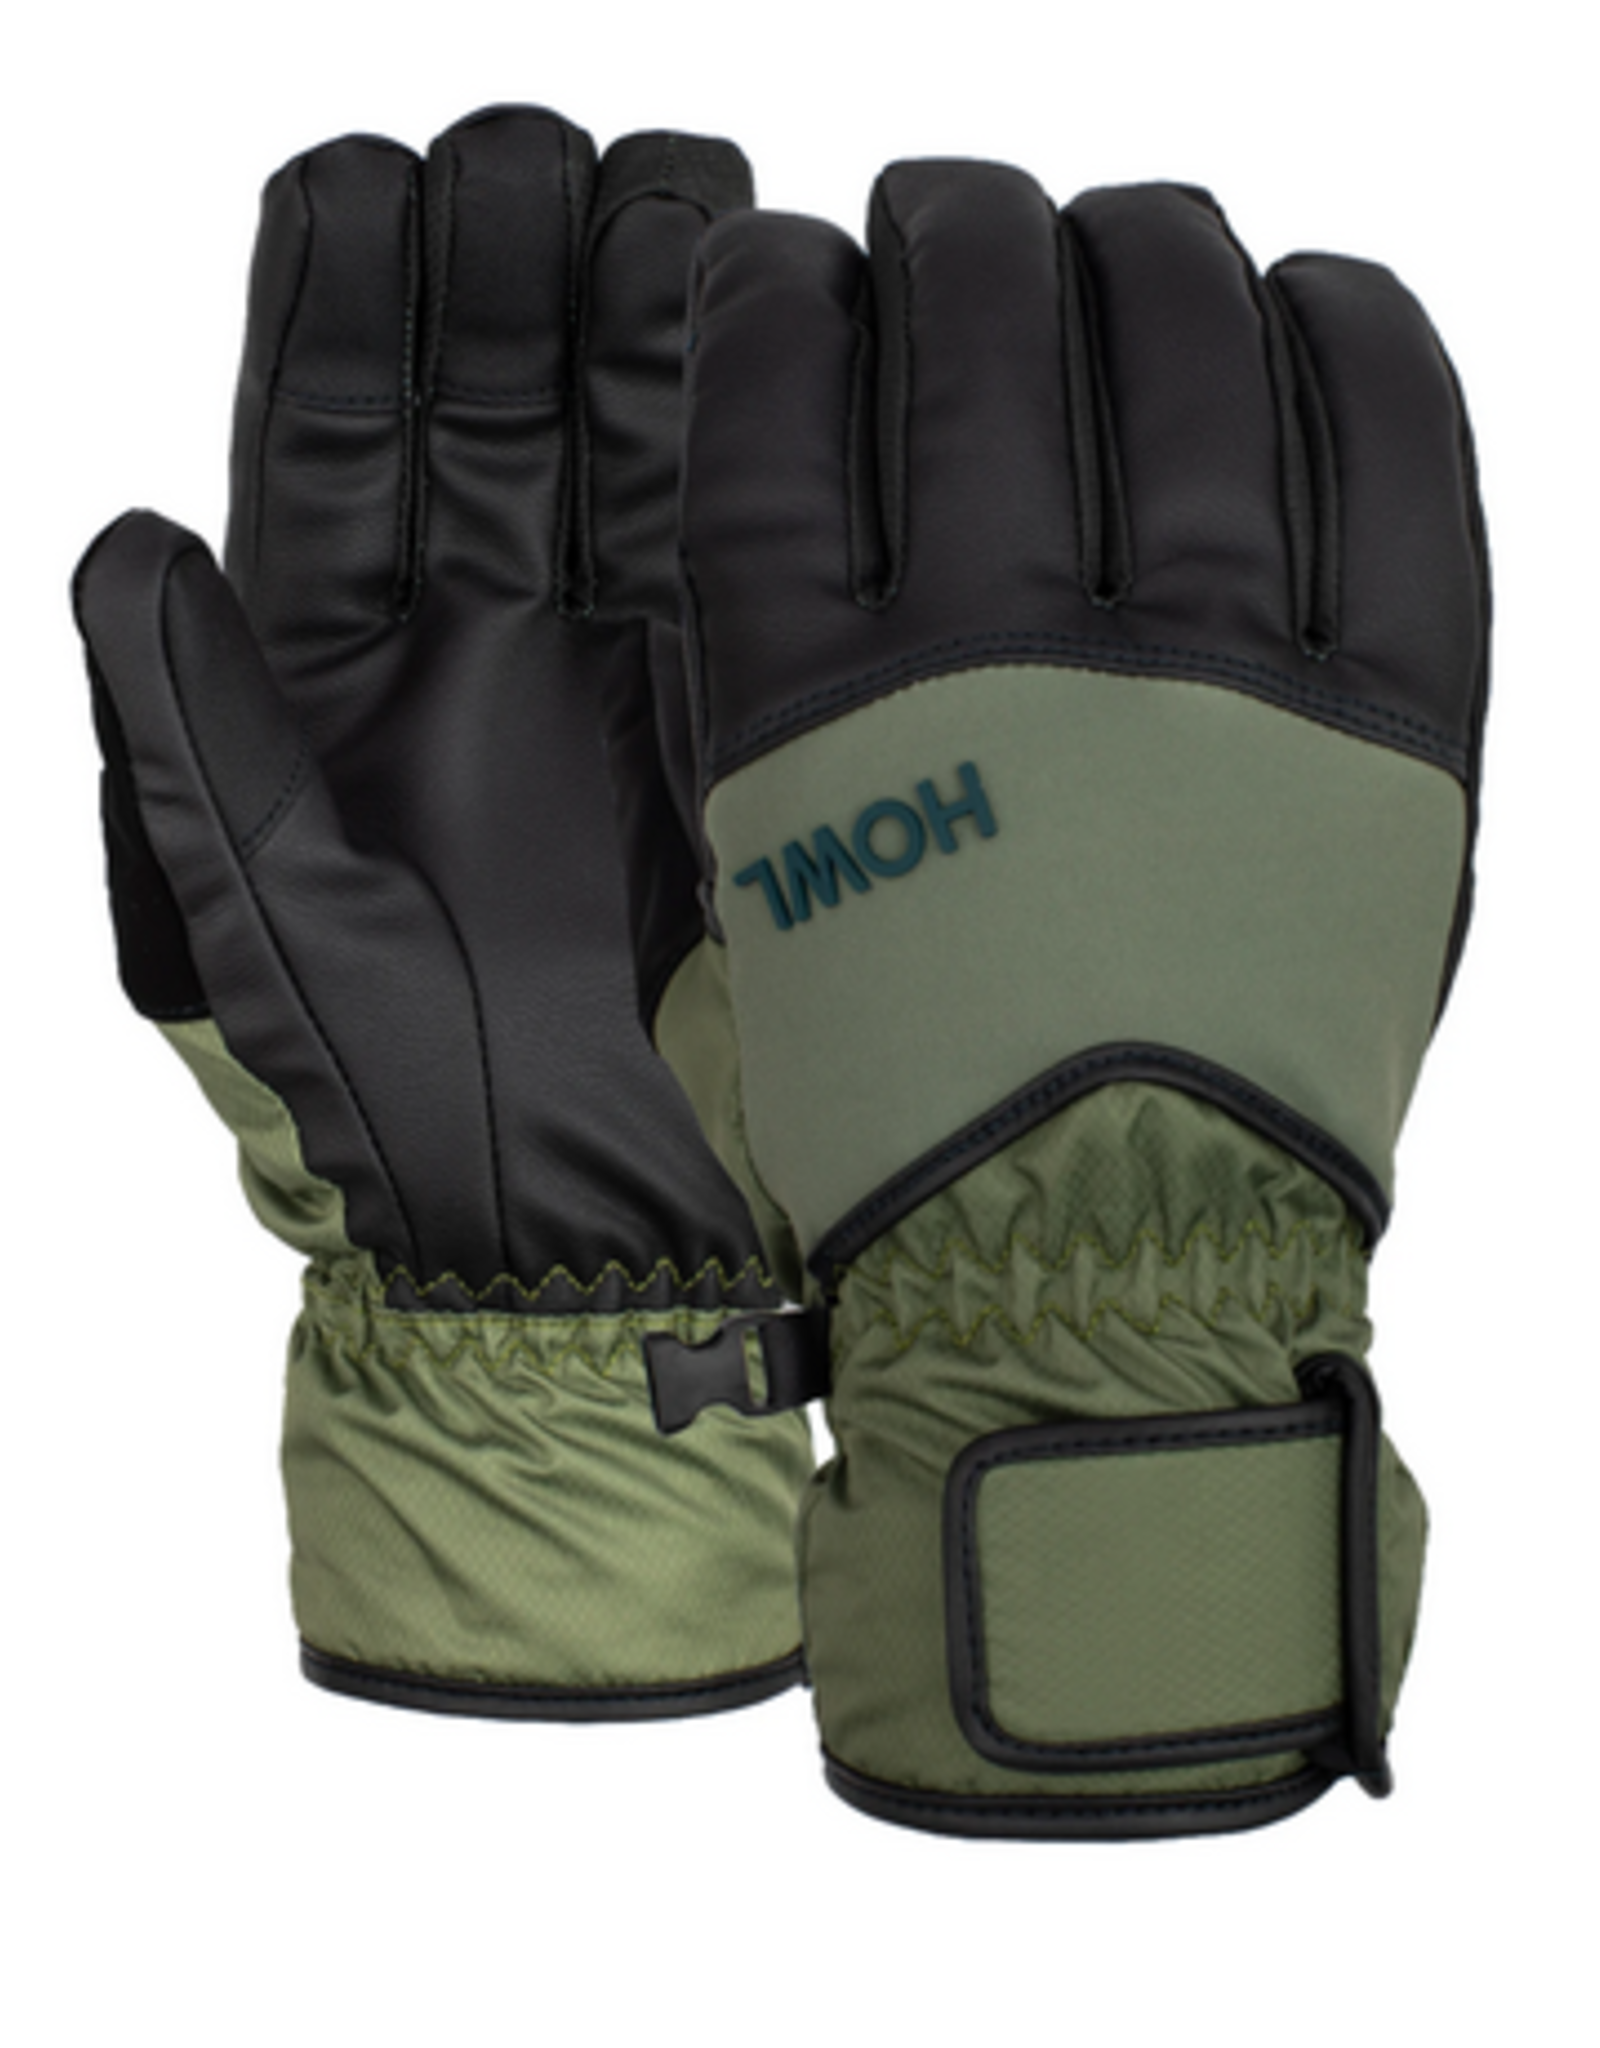 HOWL HOWL UNION GLOVE